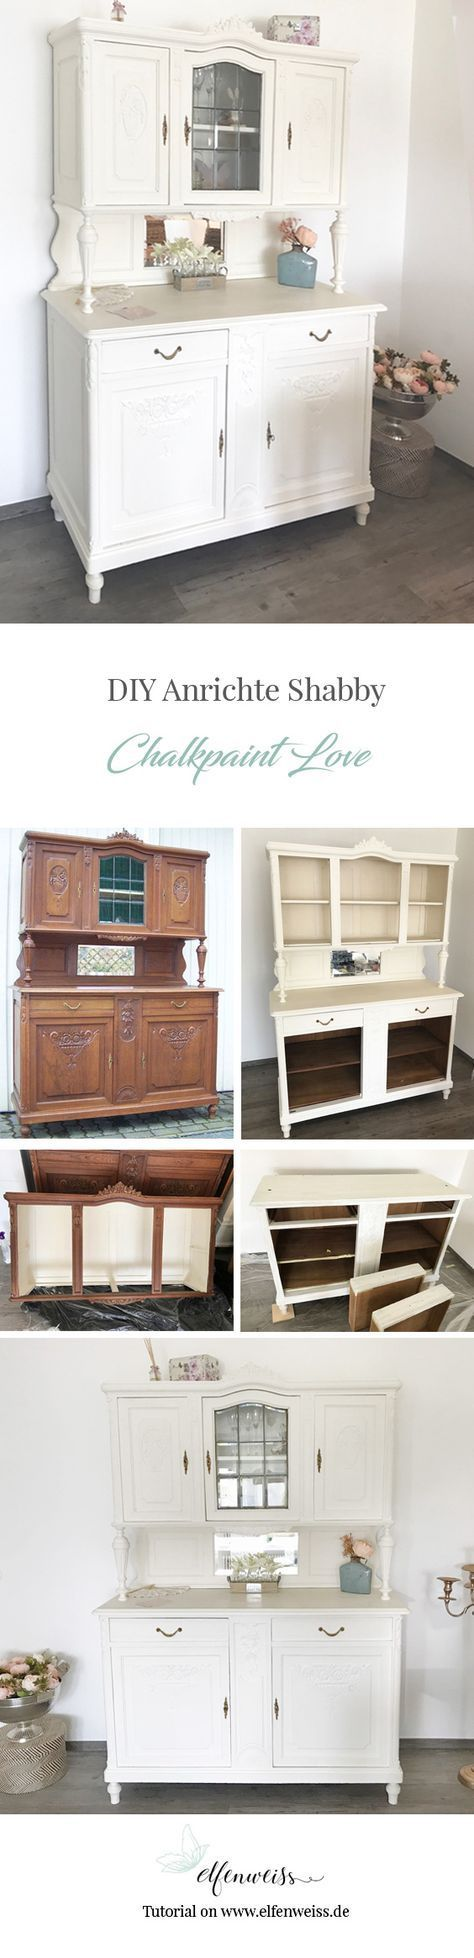 Küchenanrichte Restaurieren Diy Vintage Buffet In Kreideweiss New Home Pinterest